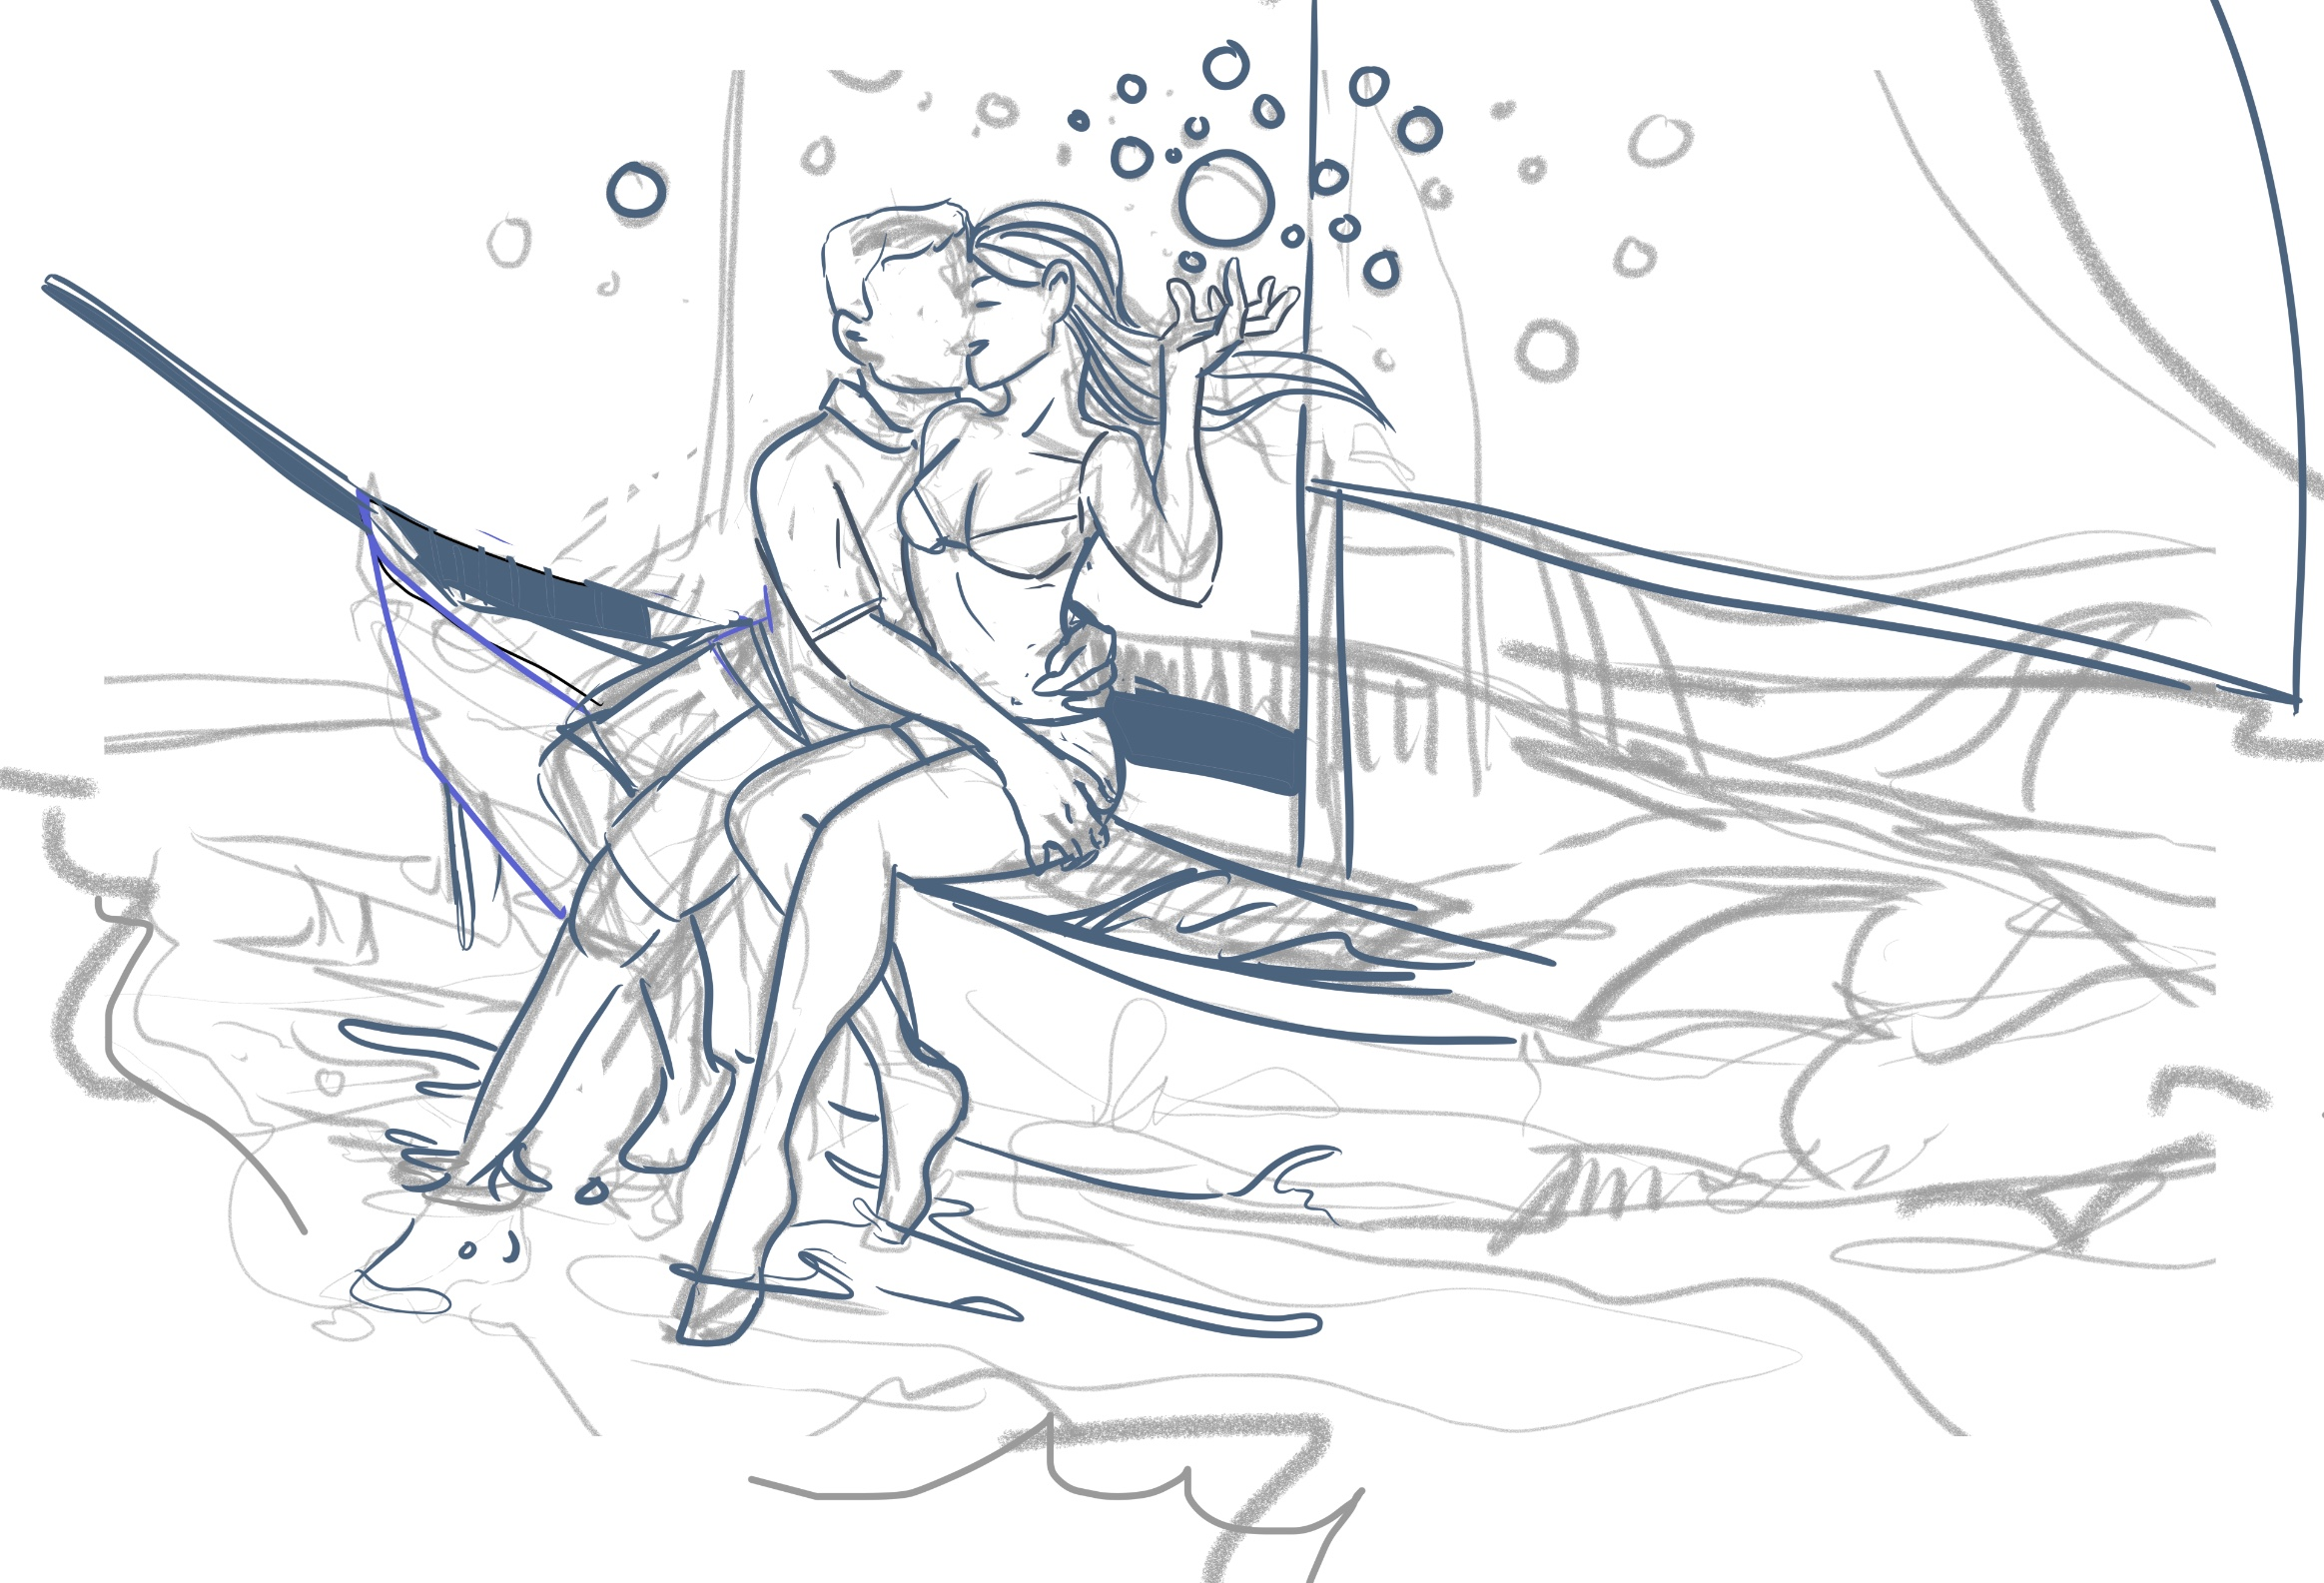 "I definitely had to actively give no fucks when I sketched this romantic sailboat scene. There was a nagging part of me that was trying to give too many fucks, saying: ""Why are they on a sailboat? That's not how a sailboat works! Why is she controlling orbs? What?"""